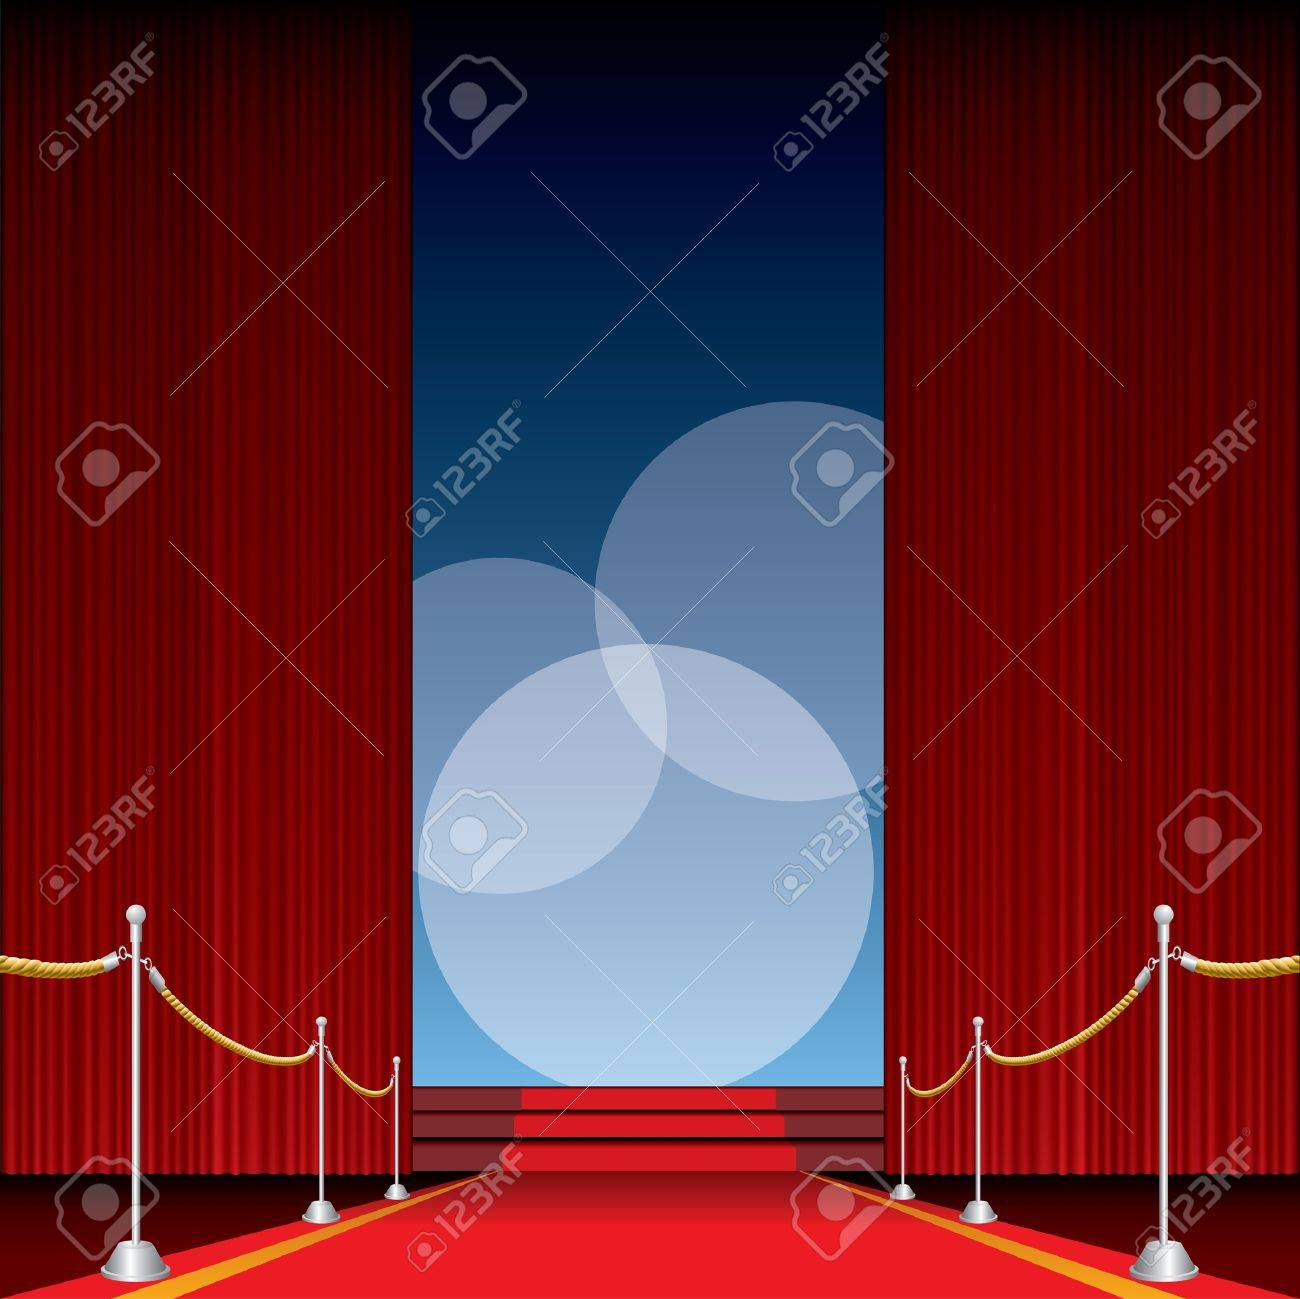 vector opened stage with red curtain and three spotlights Stock Vector - 9106706